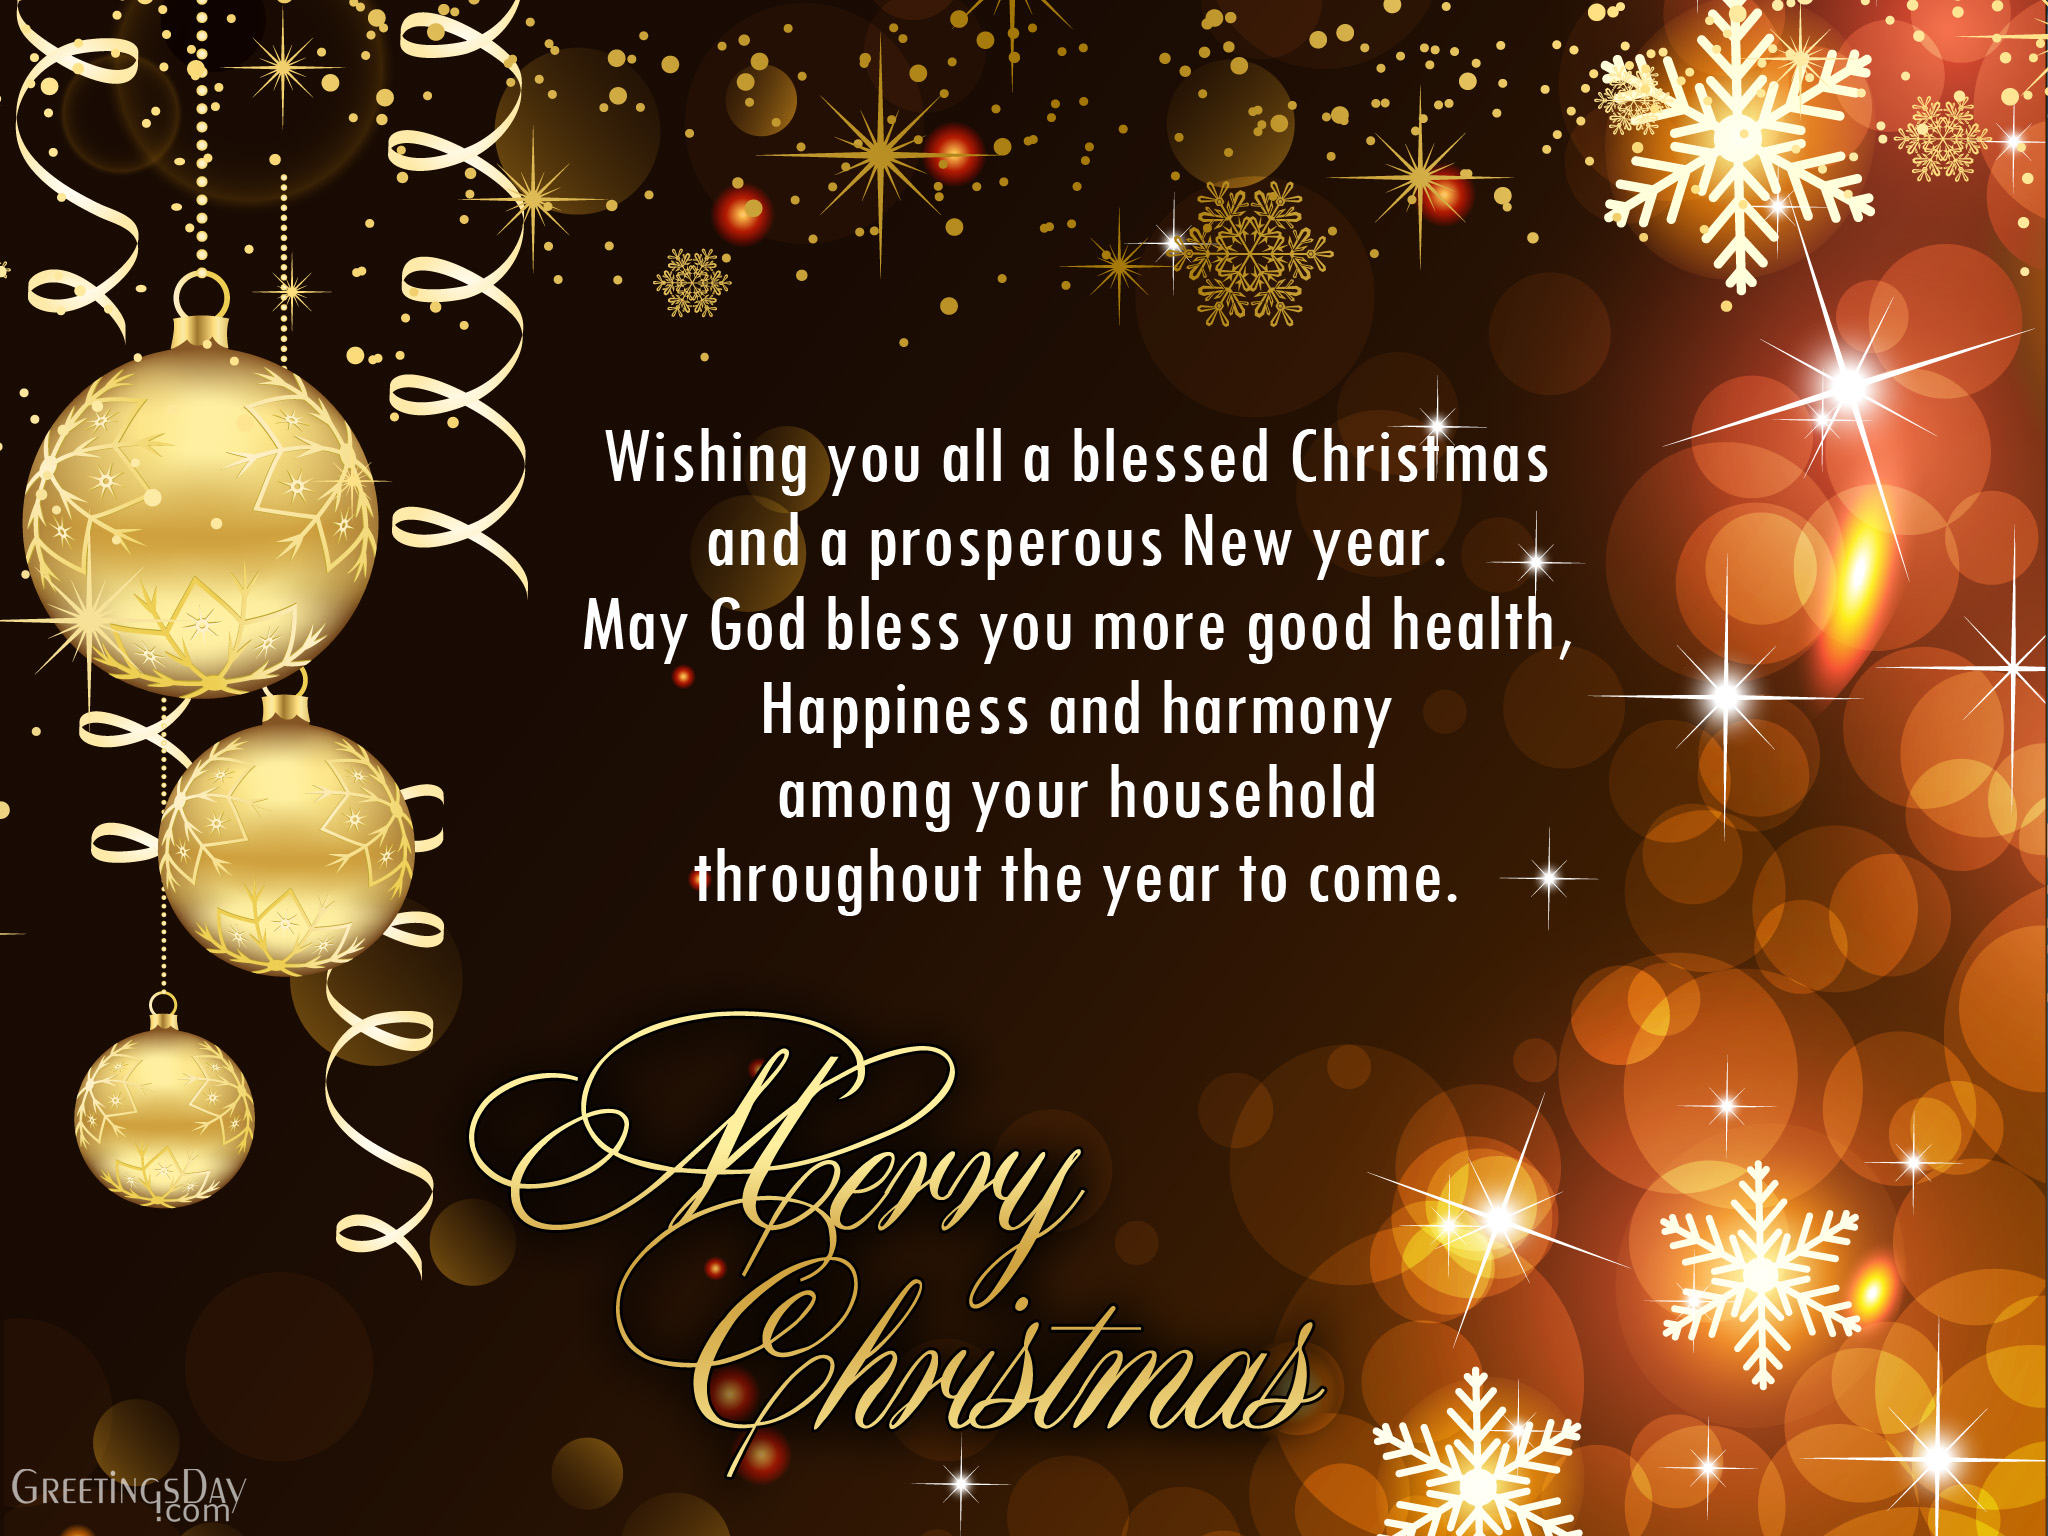 Have A Healthy And Happy Christmas And A Blessed New Year.